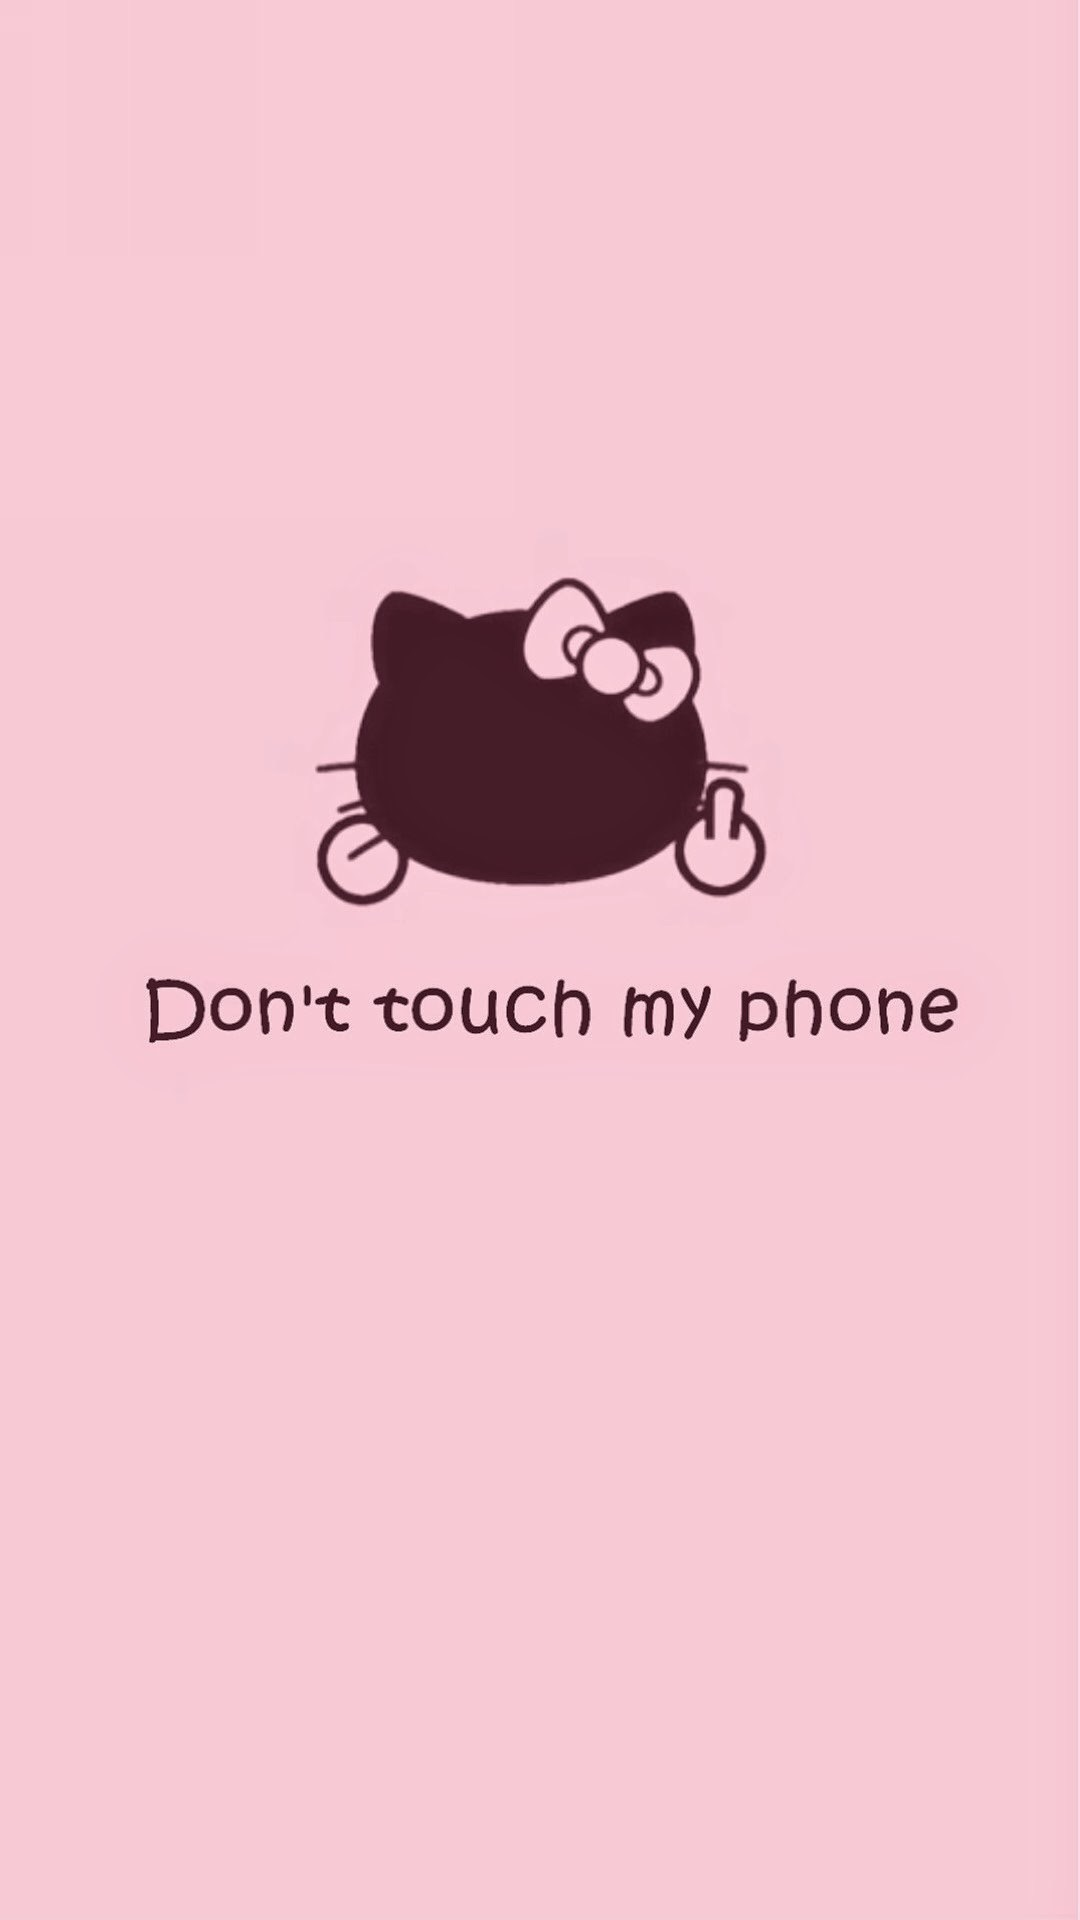 Don T Touch My Phone Wallpaper Girl キティちゃん「don T Touch My Phone」 Iphone壁紙 ただひたすらiphoneの壁紙が集まるサイト